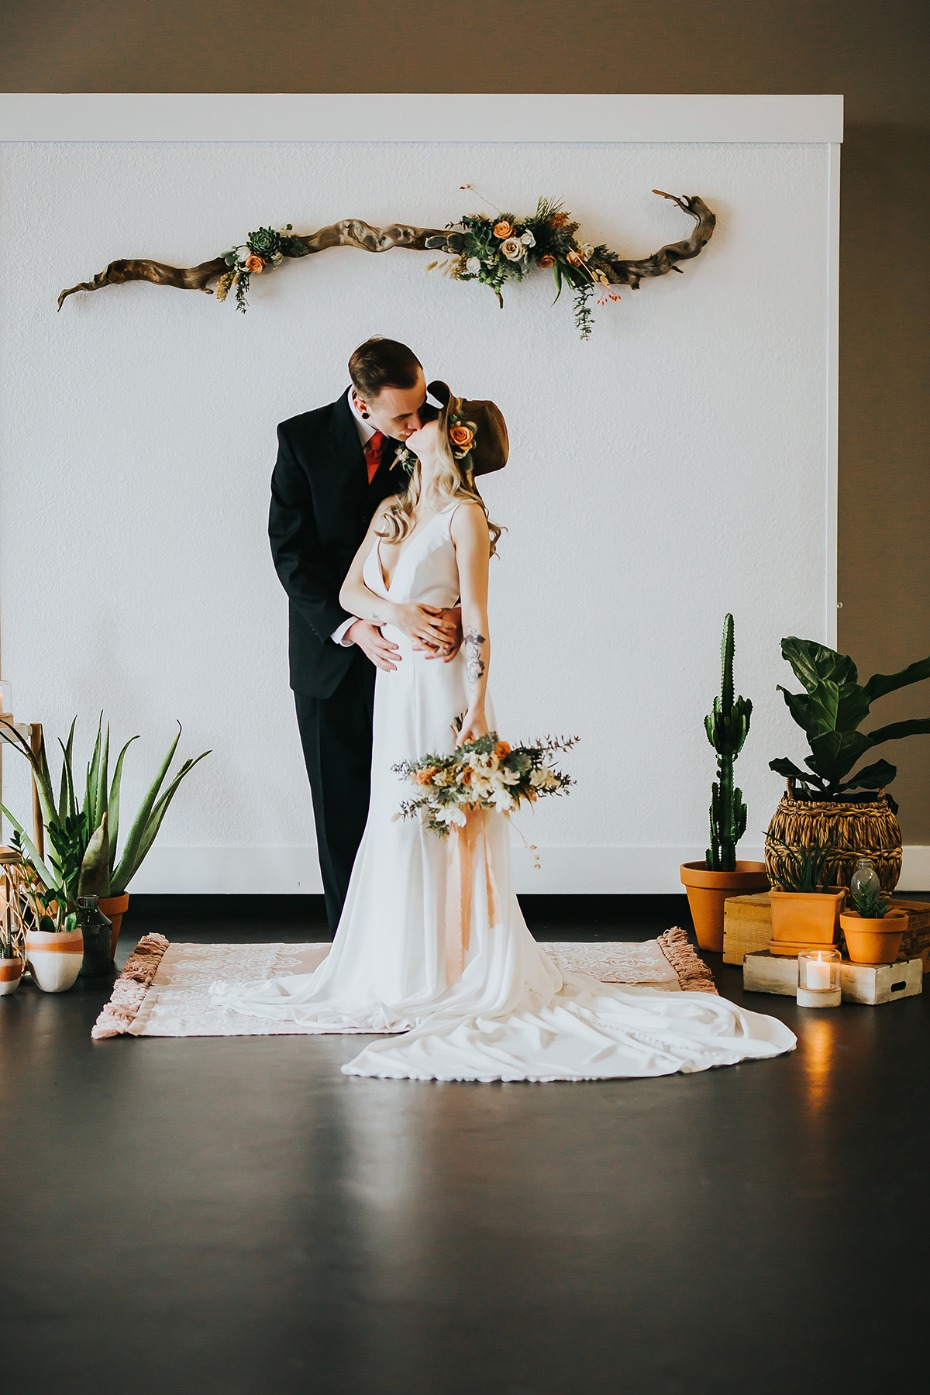 Desert wedding inspiration from Portland